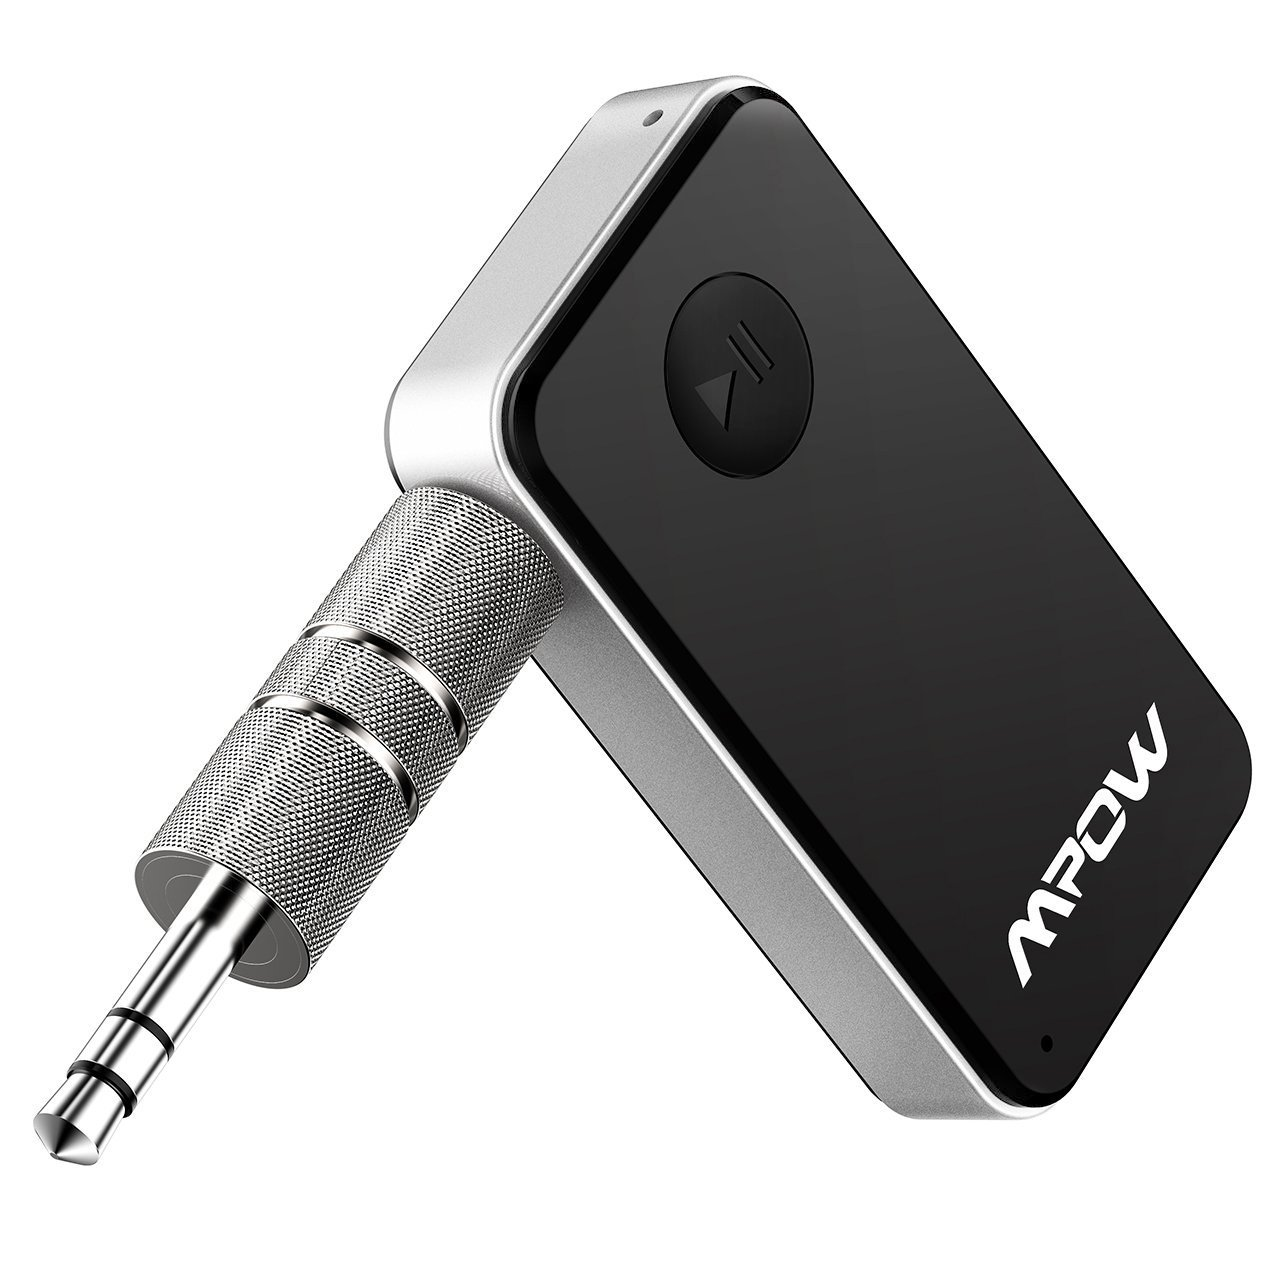 Mpow Bluetooth Receiver, Streambot Mini Bluetooth Car Aux Adapter / 10Hrs Hands-Free Car Kits/Portable Wireless Music Adapter for Car/Home Audio Stereo System